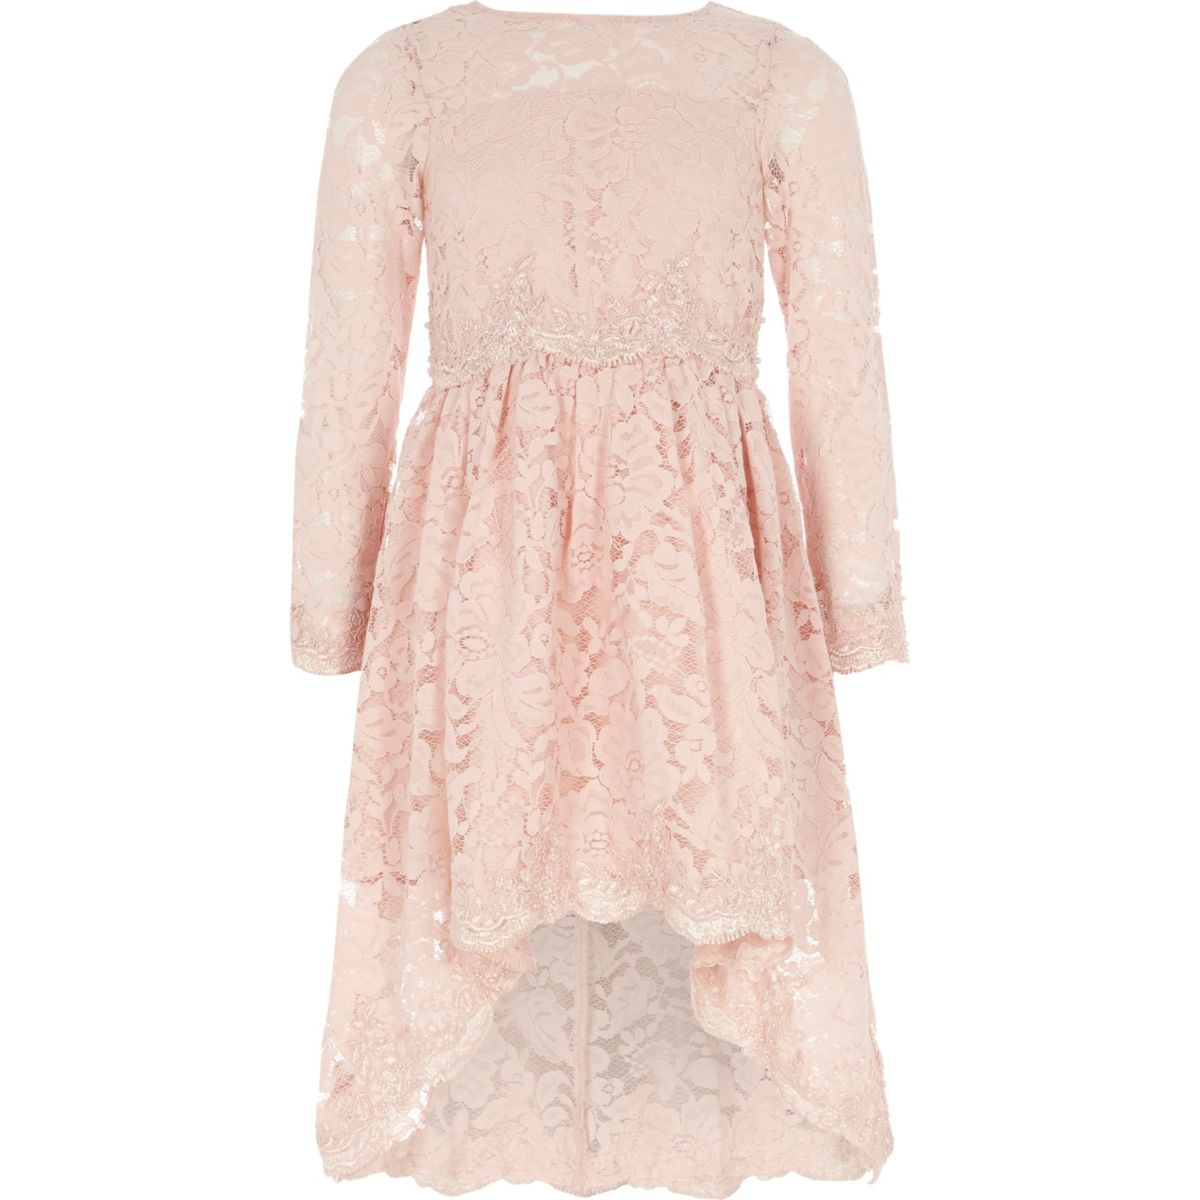 Girls pink lace embellished prom dress